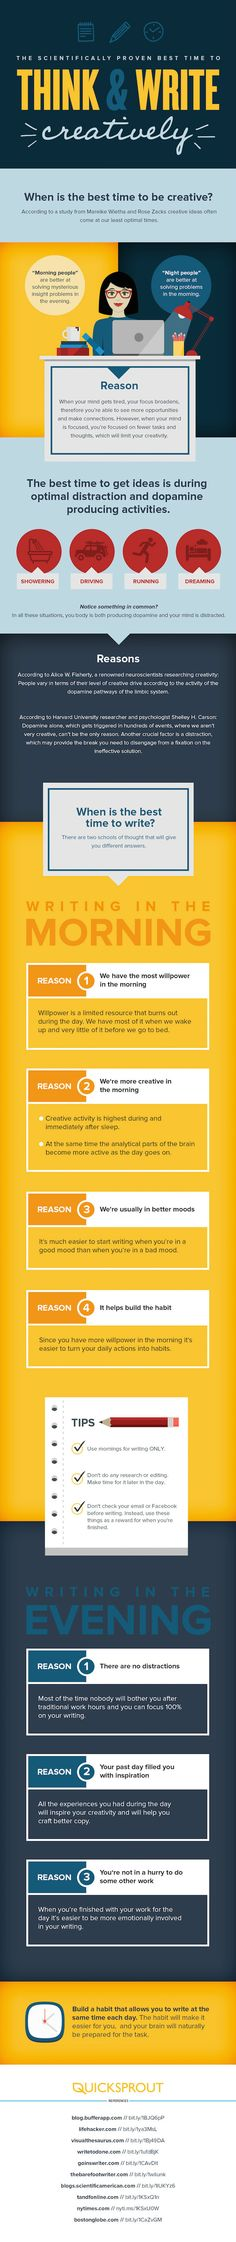 When is the best time to be creative? #infographics